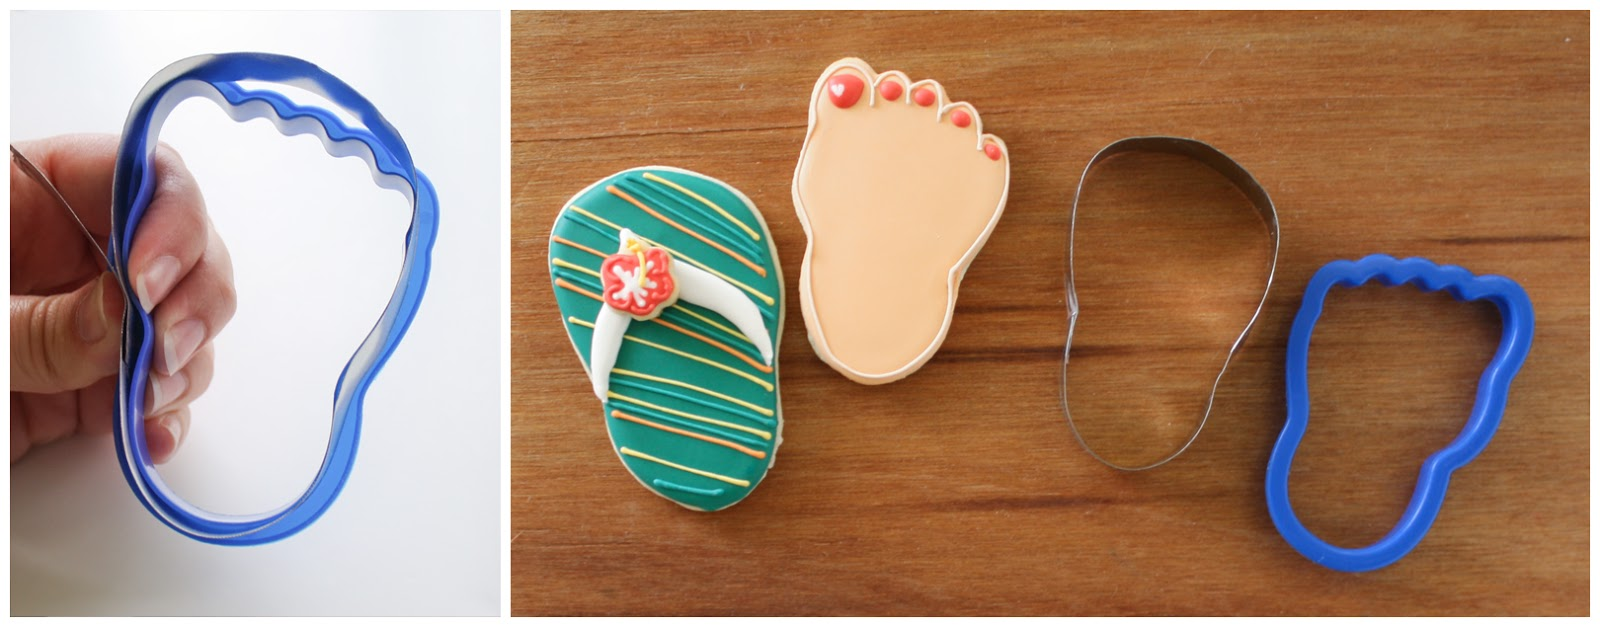 b5ff9f819960 Then I used the foot cookie cutter as a form to wrap and bend the metal  strip and now I have a flip flop just the right size for the foot!